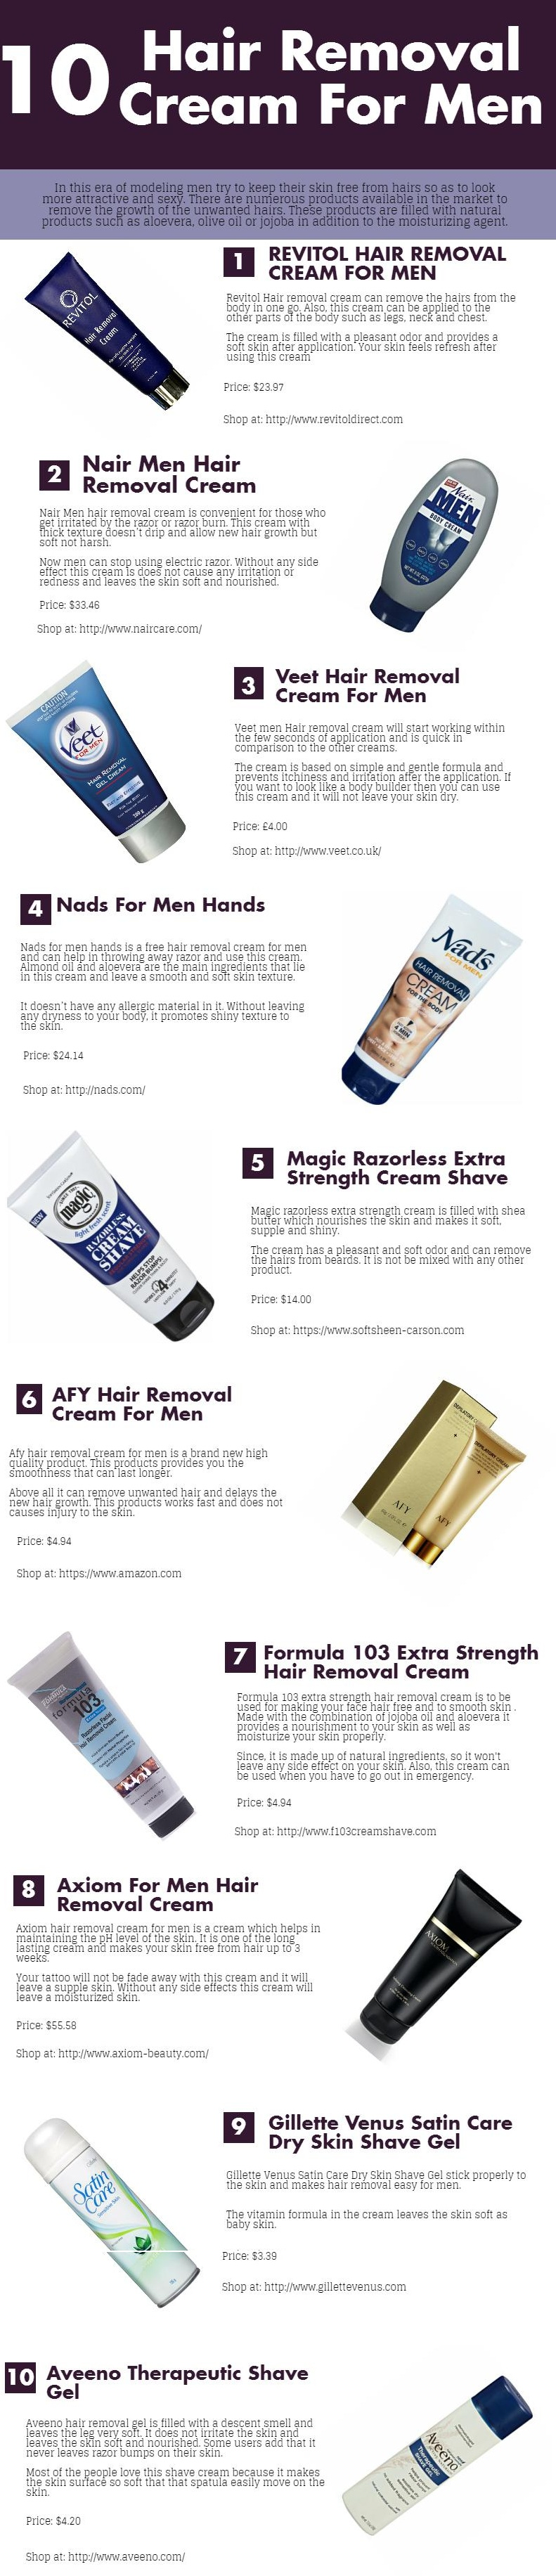 best hair removal cream for men- infographic